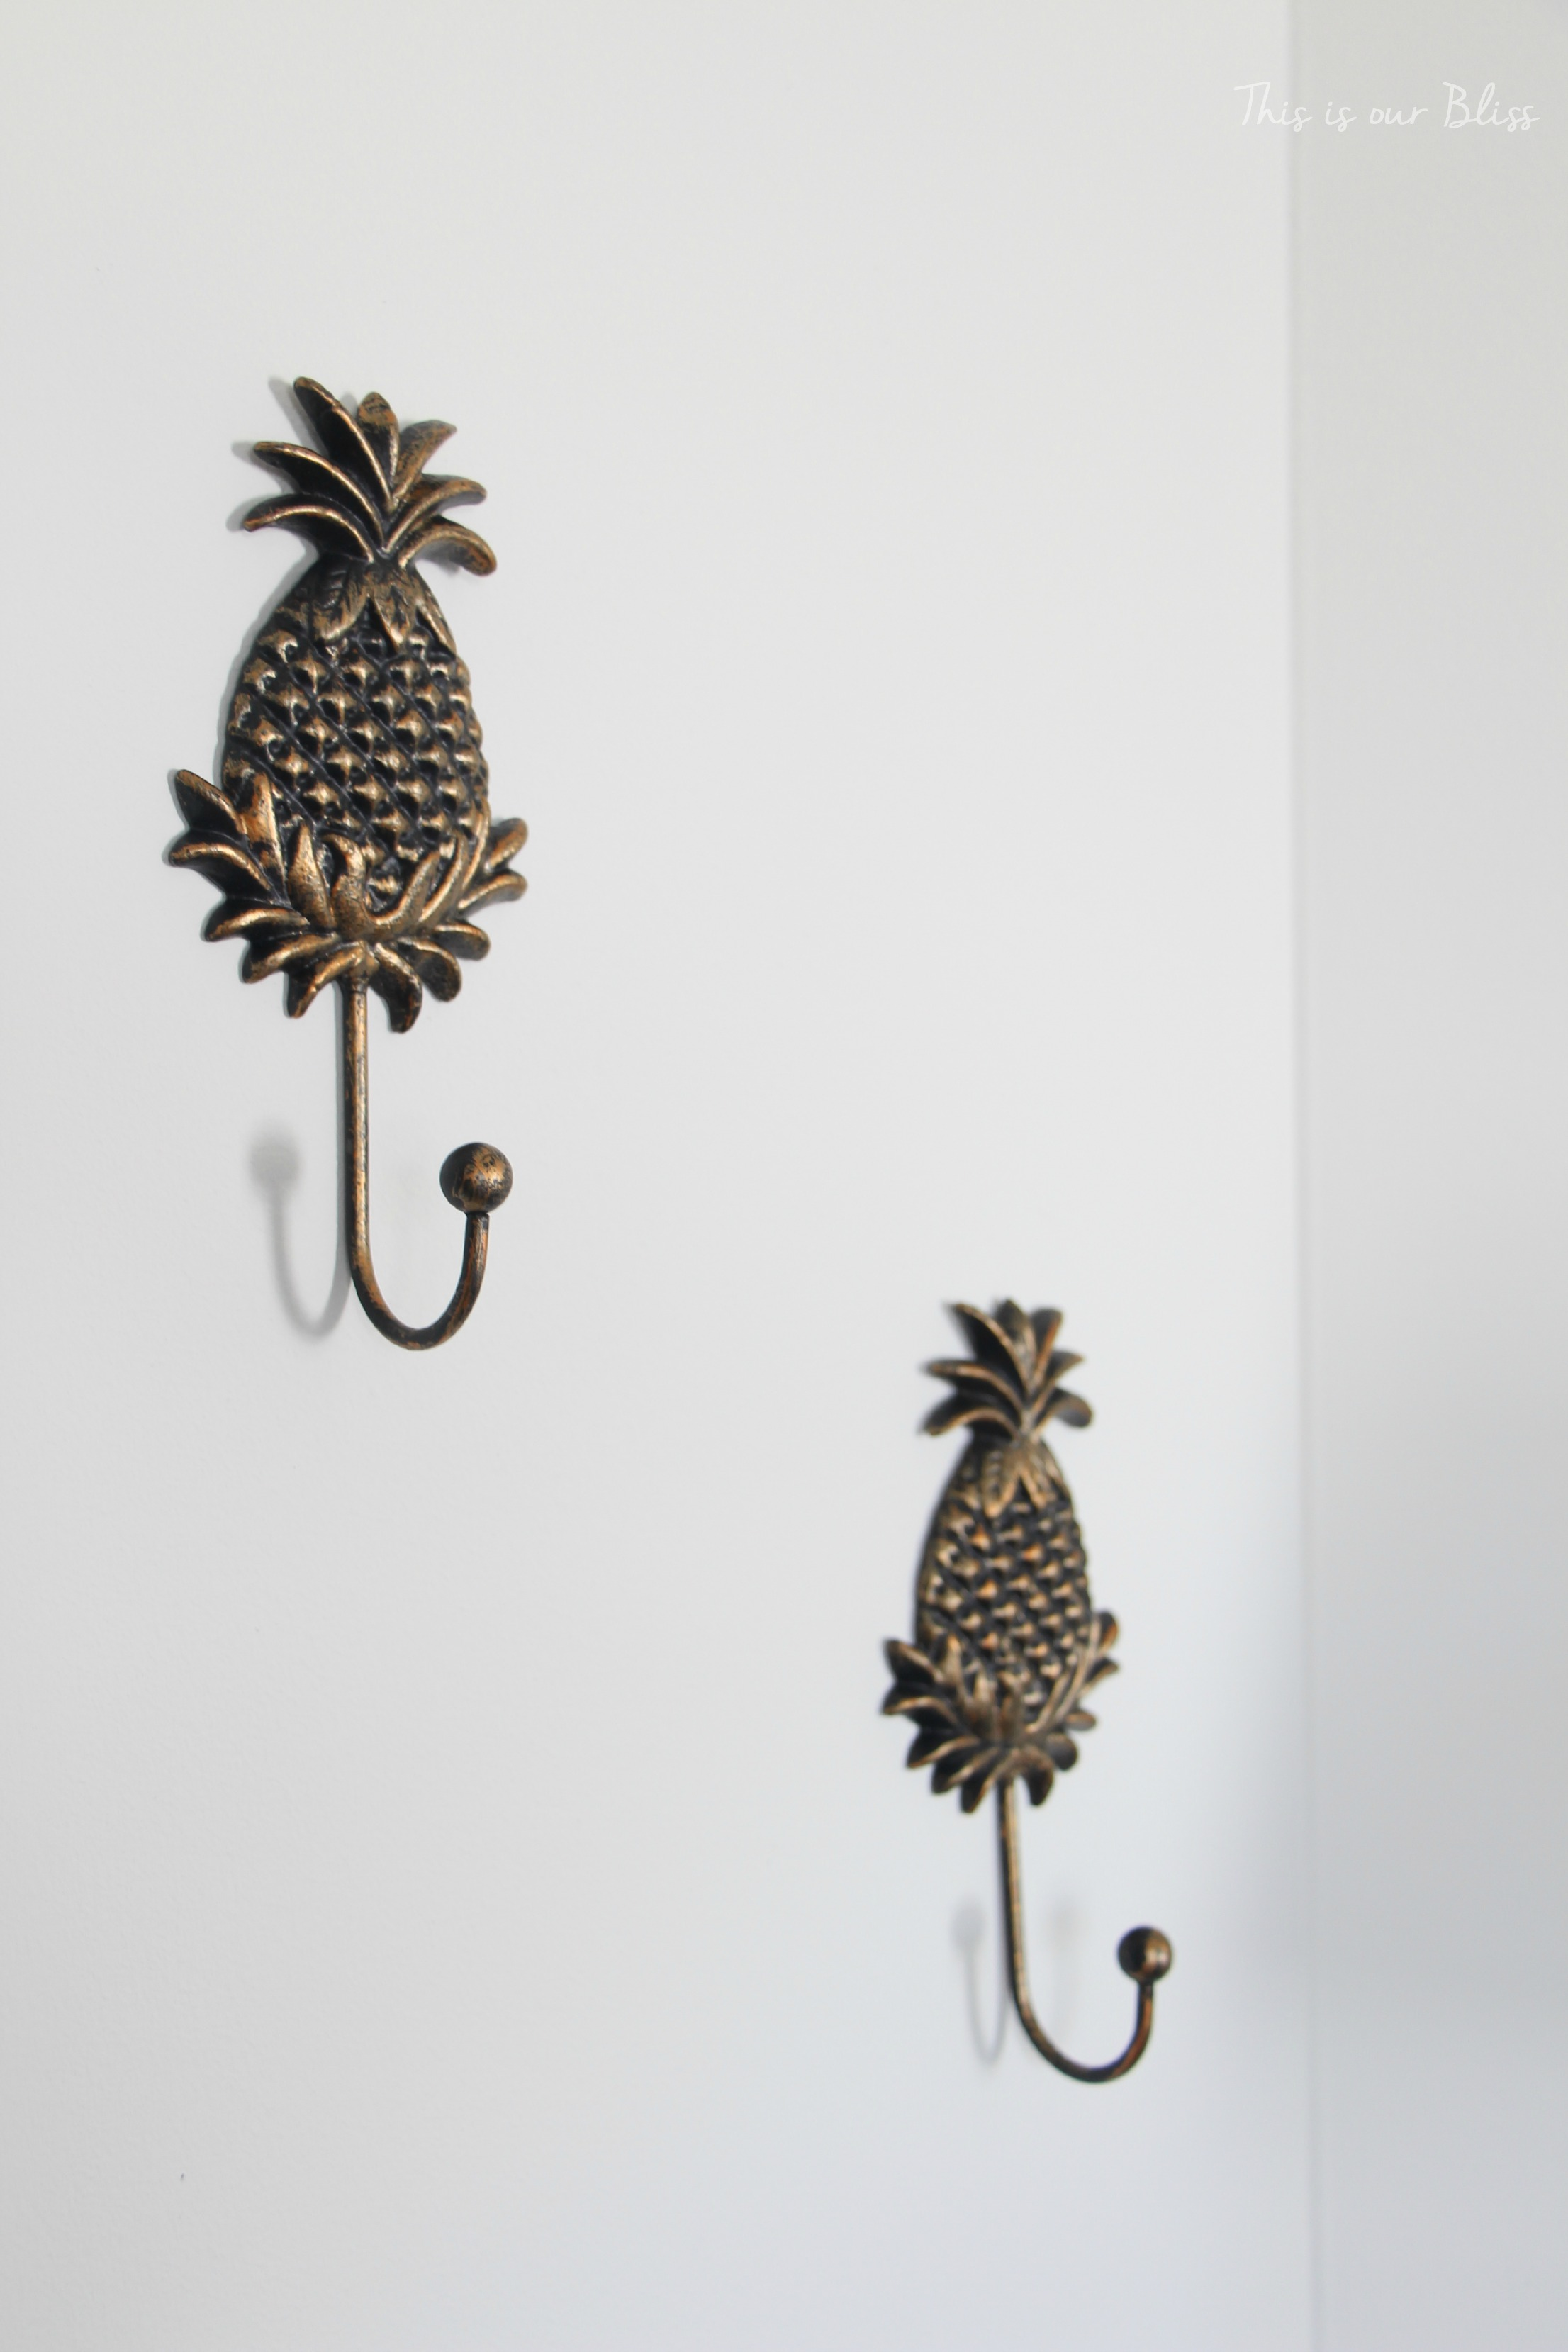 gold pineapple wall hooks - guestroom revamp - This is our Bliss